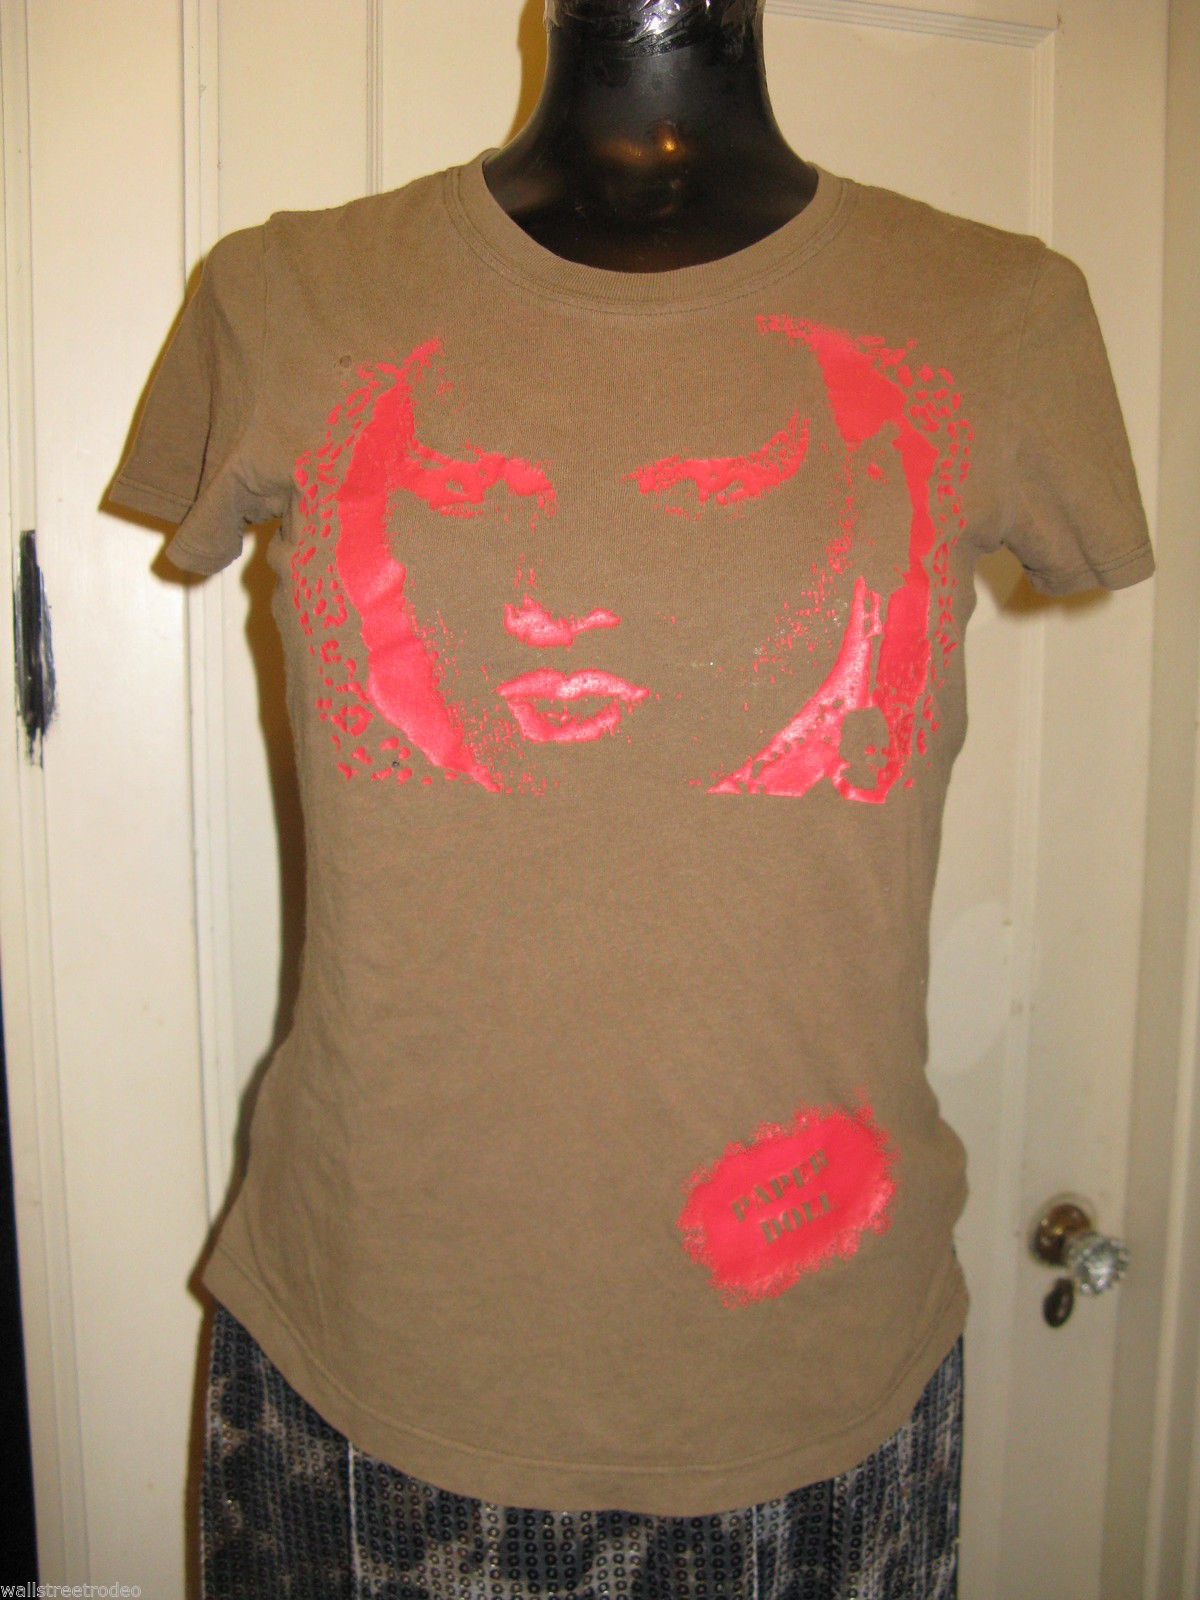 Primary image for Sue Catwoman Paper Doll Productions well worn punk rock t-shirt top Small S